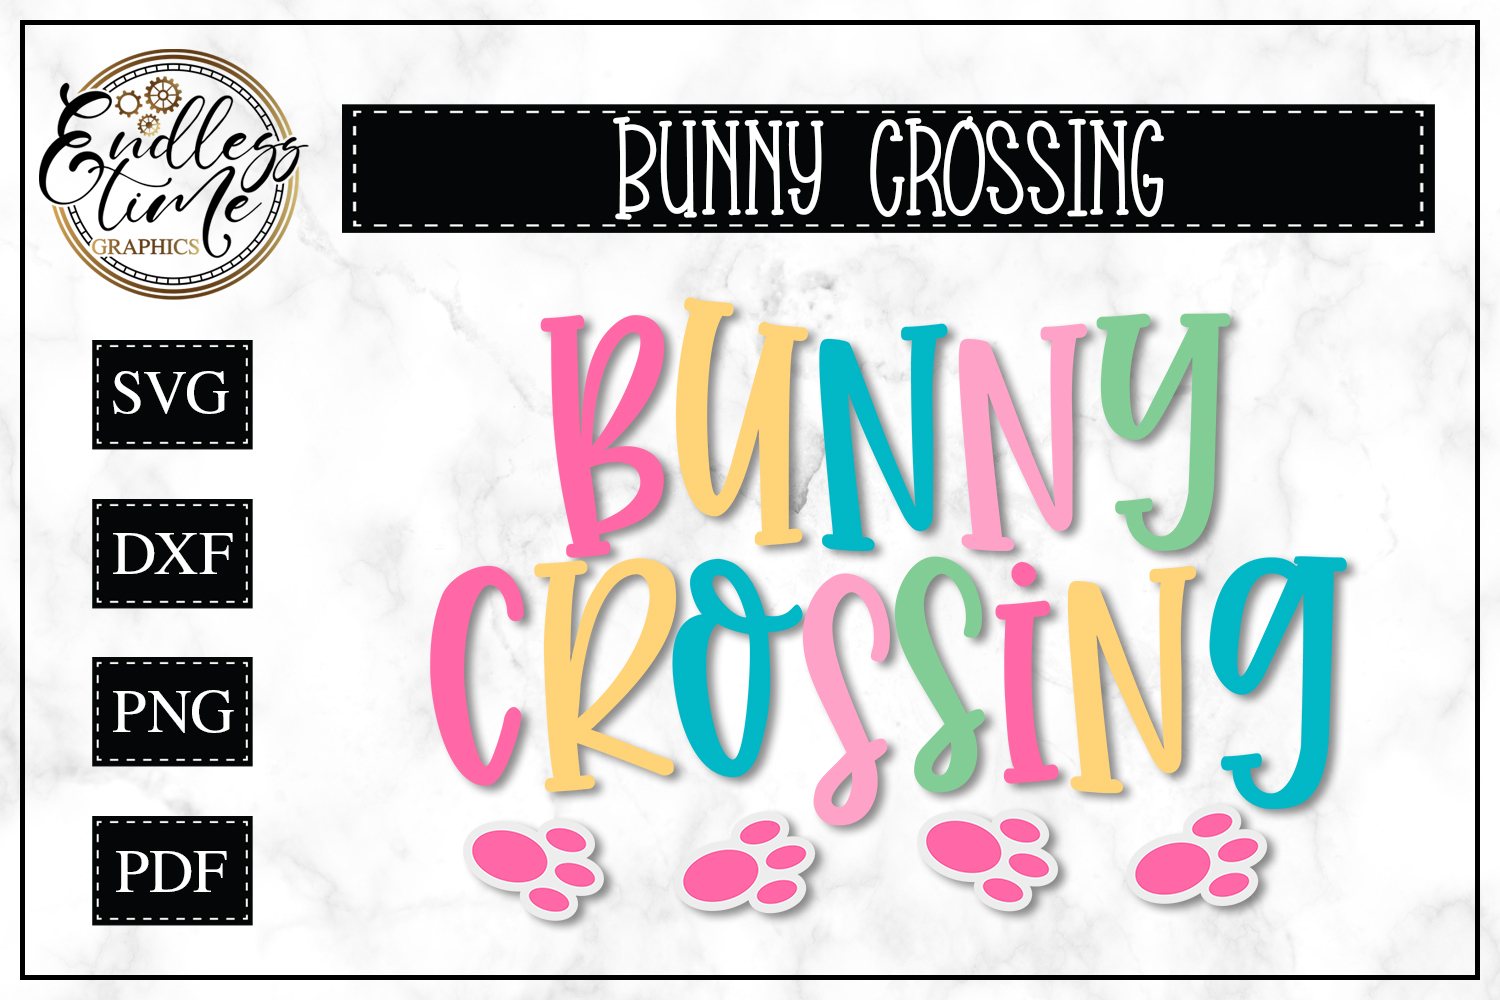 Bunny Crossing SVG - A Hoppy Little Easter SVG example image 1